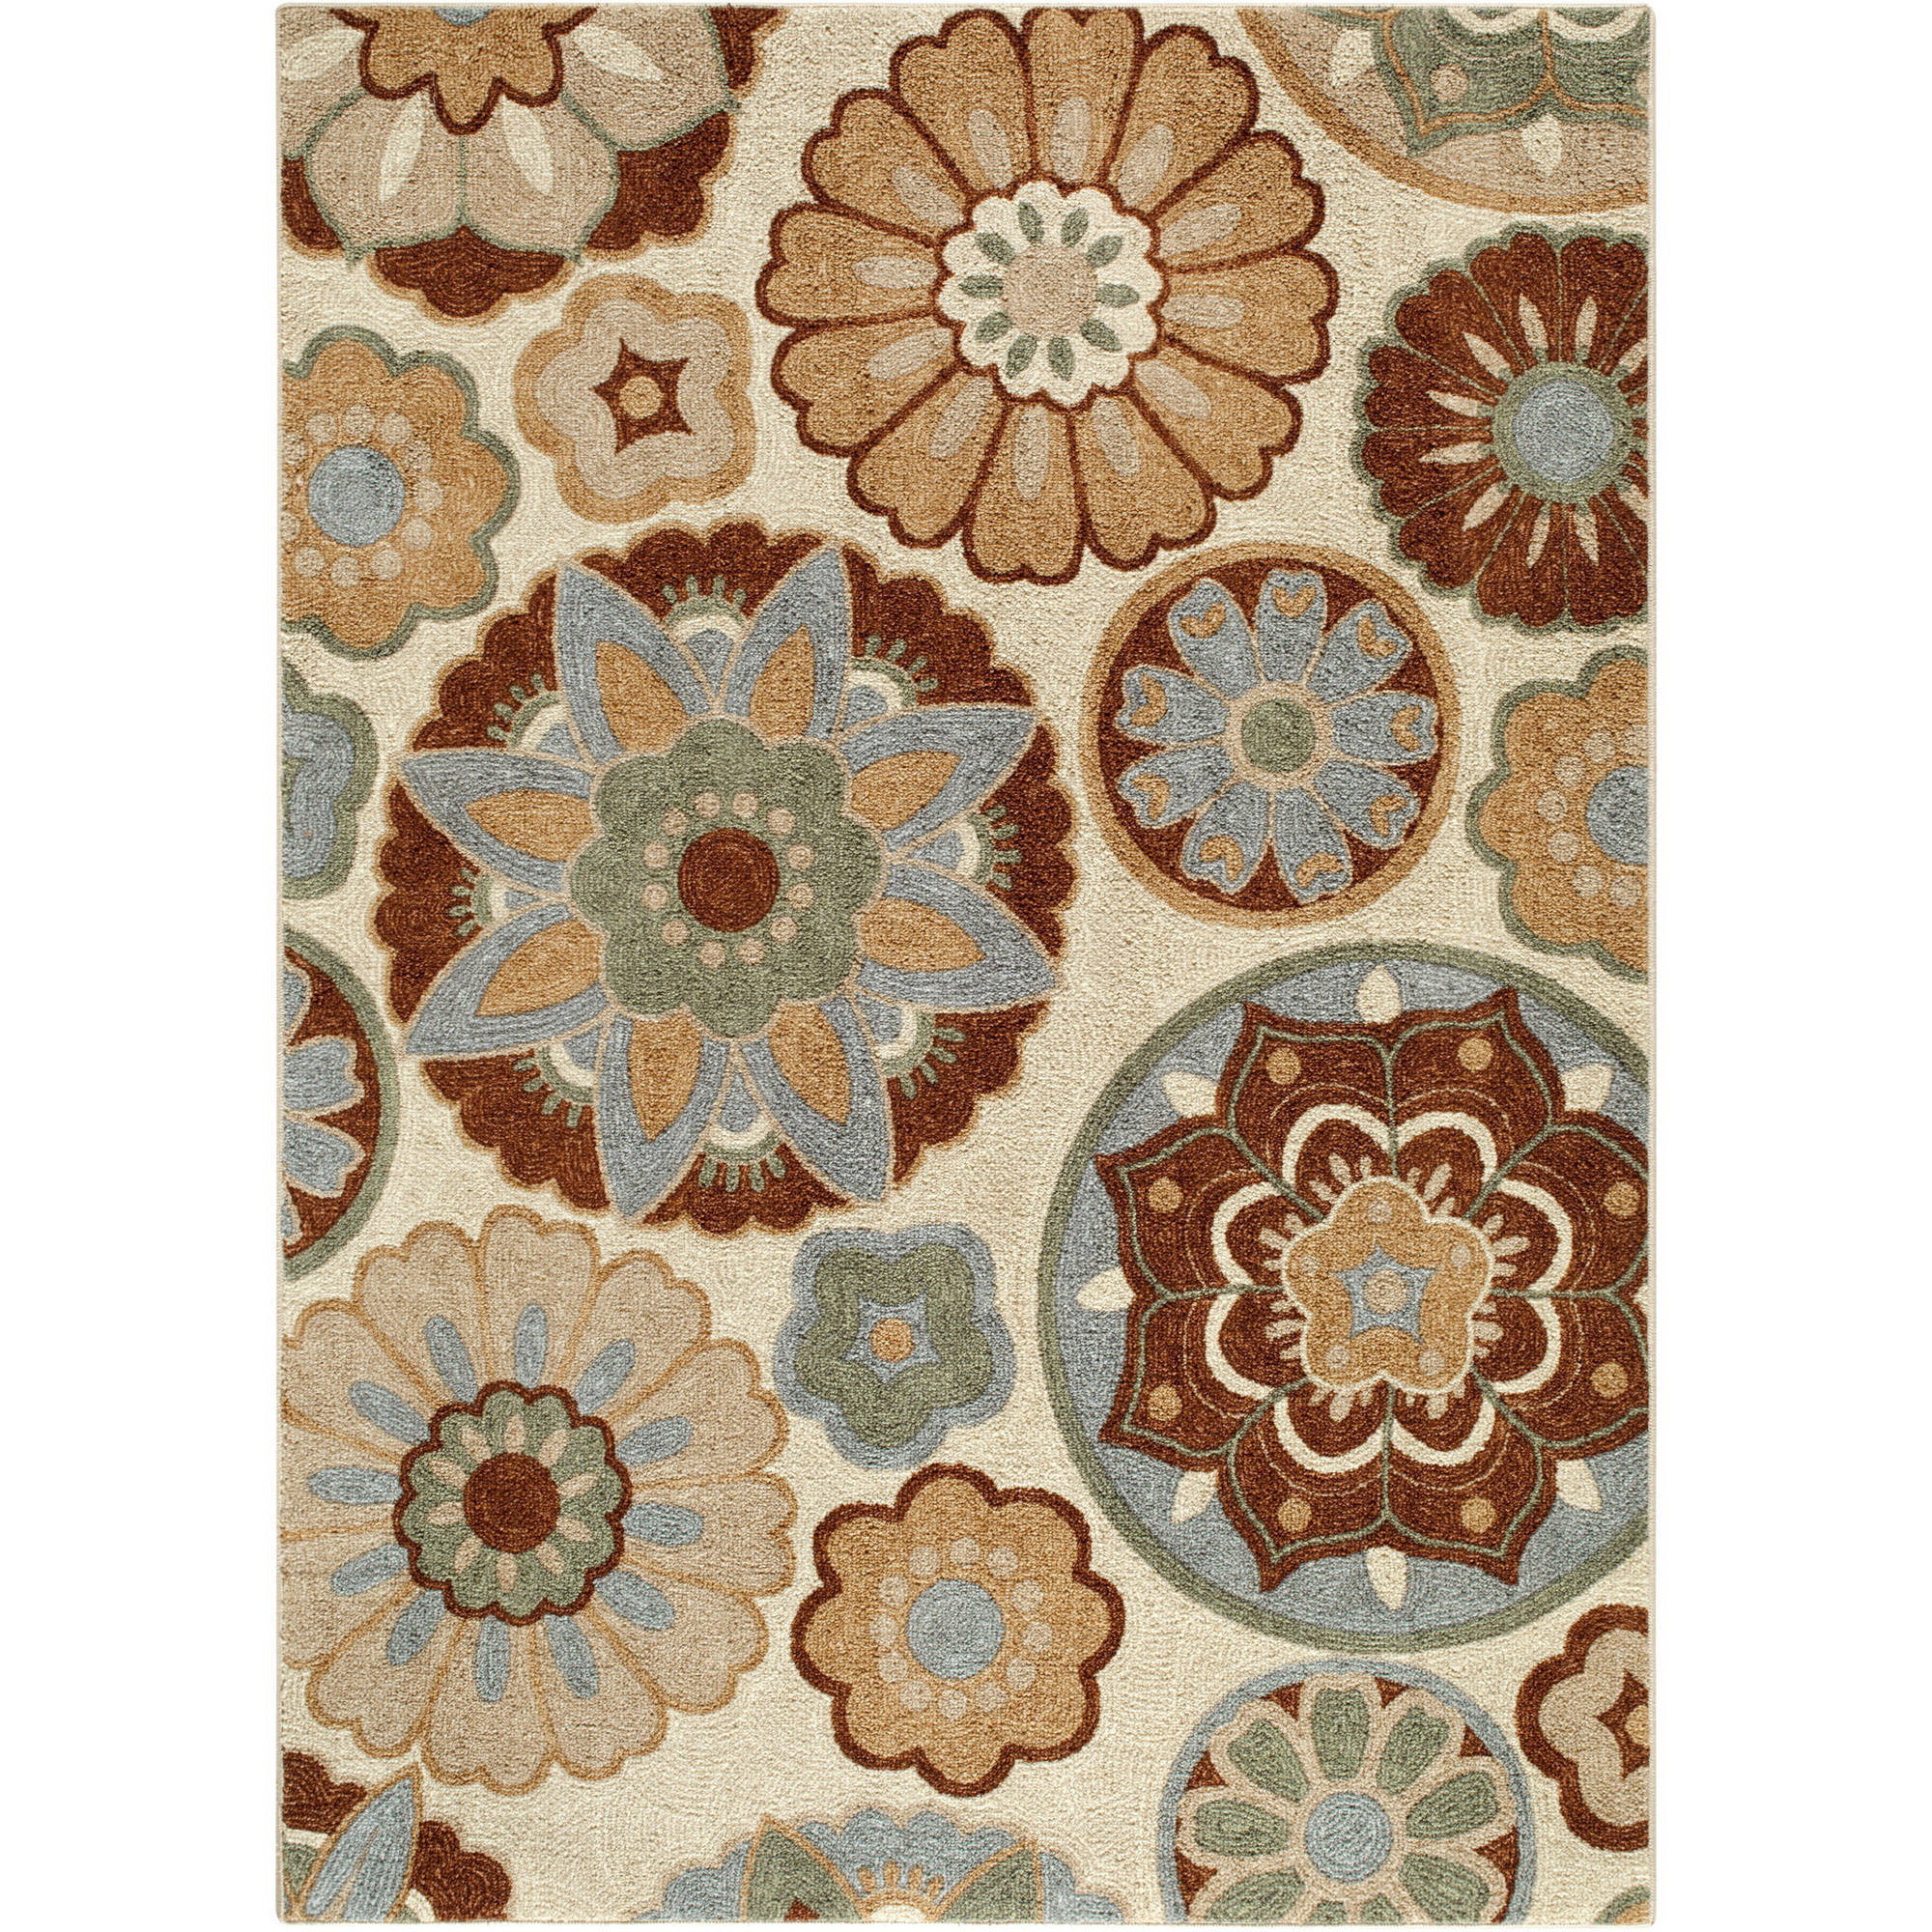 Better Homes and Gardens Suzani Faux Hook Medallion Rug, Tan